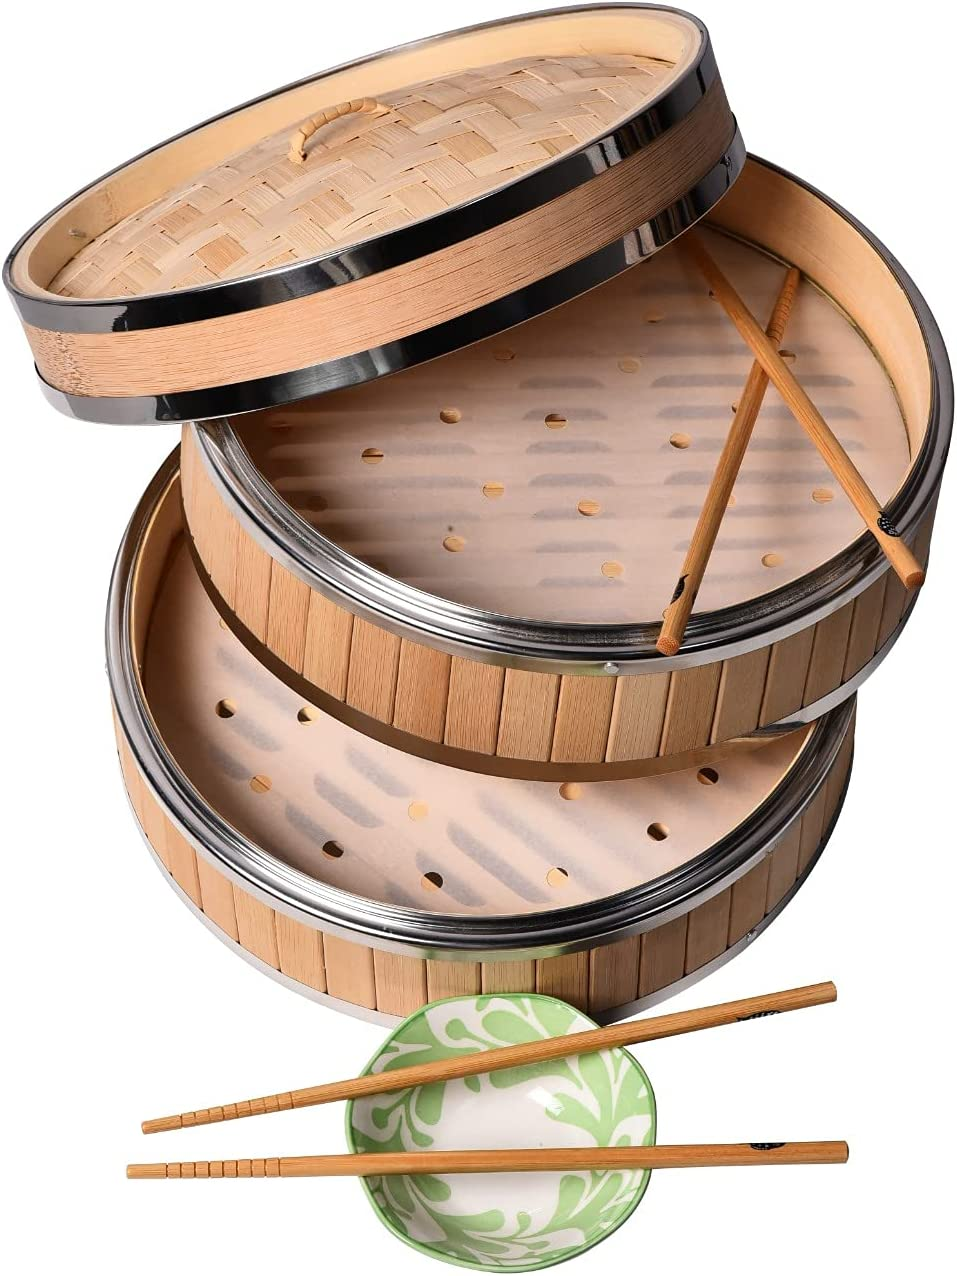 Bamboo Steamer 10 Inch, Two Tier Baskets - Dim Sum Dumpling & Bao Bun Chinese Food Steamers - Steam Baskets For Rice, Vegetables, Meat